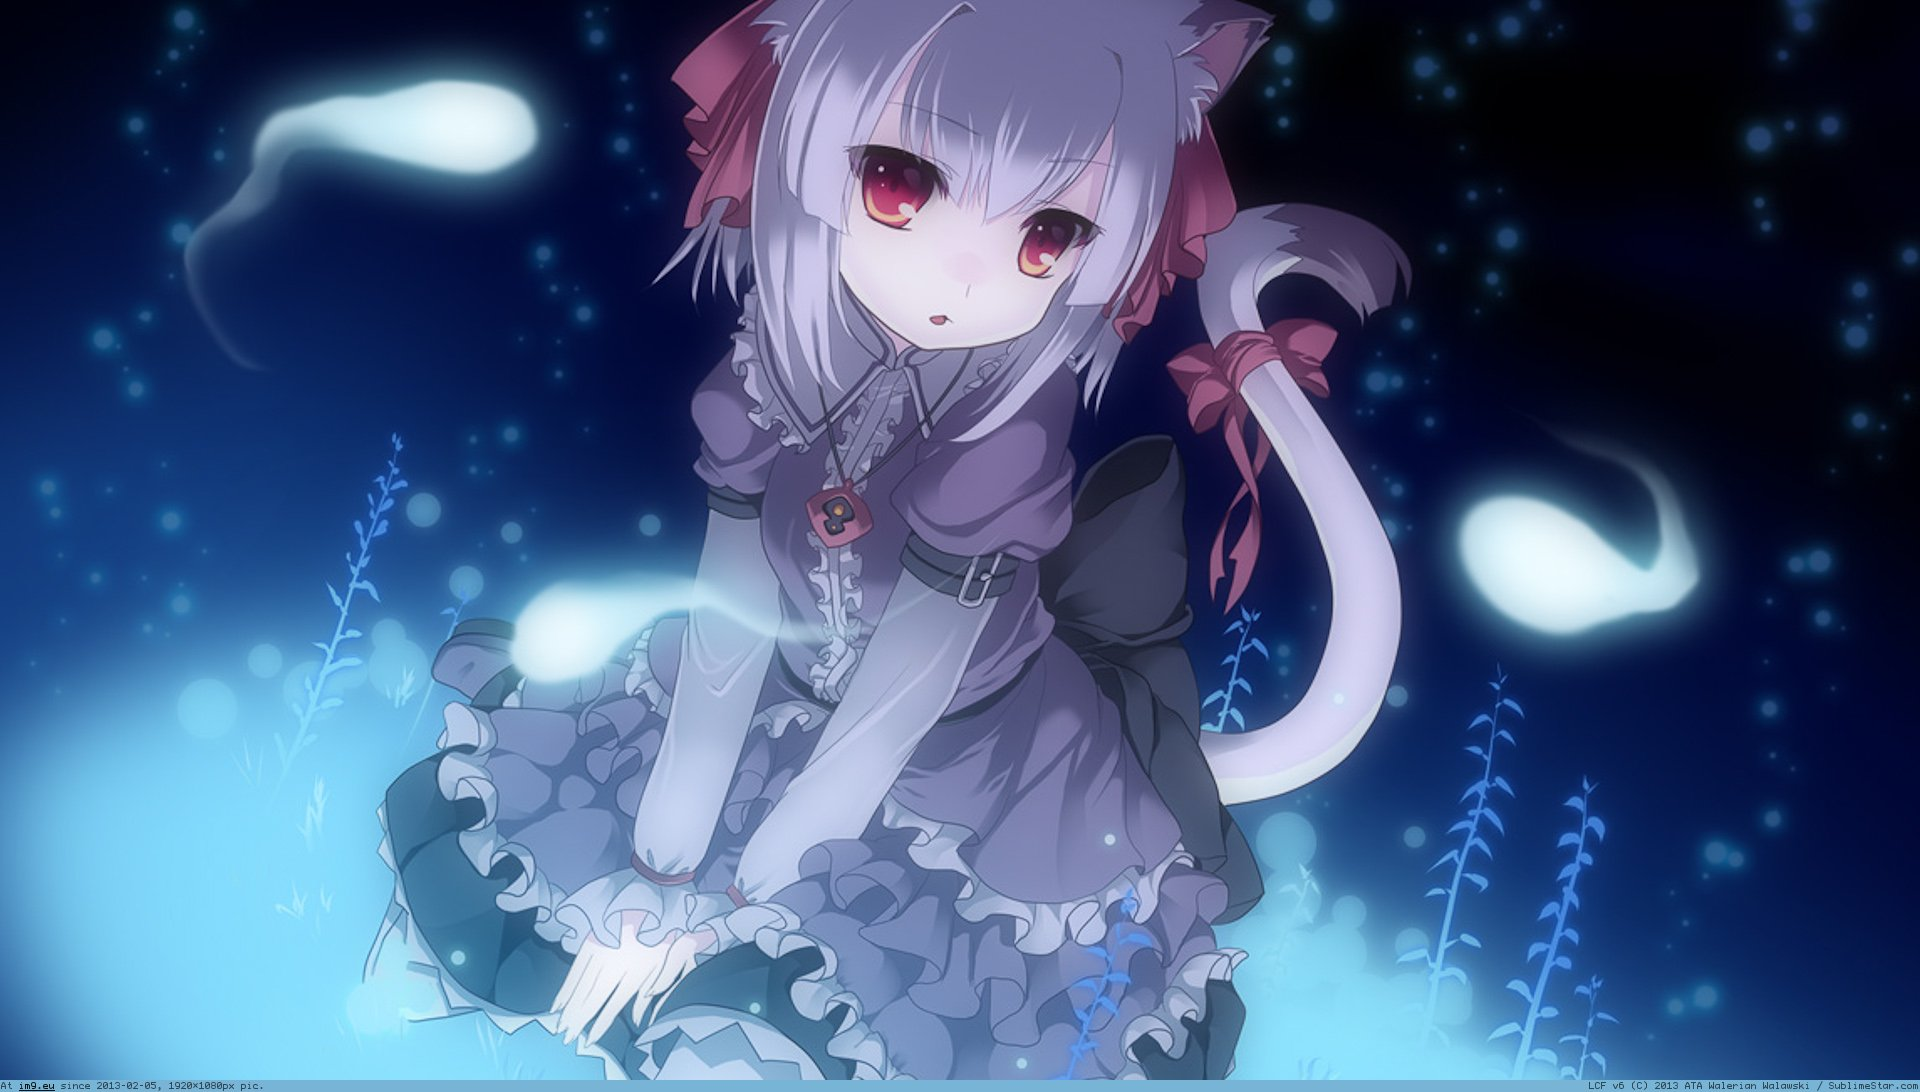 wallpaper catgirl 1 anime wallpaper catgirl 2 anime wallpaper catgirl 1920x1092